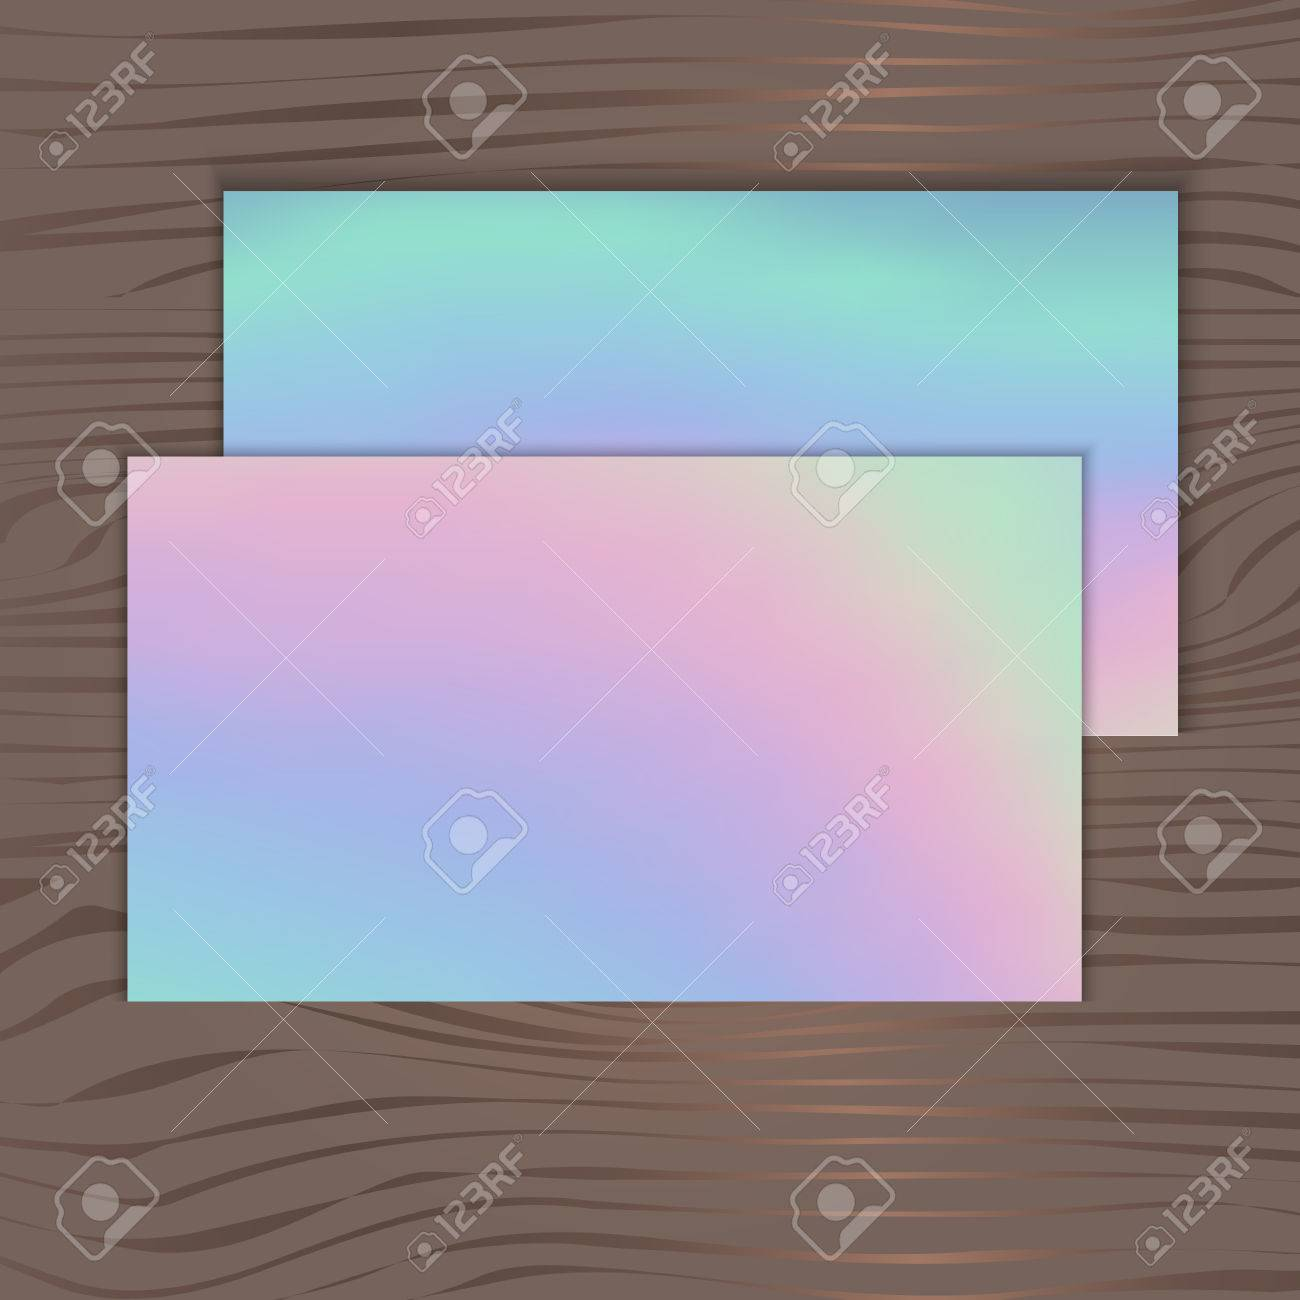 Holographic background for business cards on a wooden background holographic background for business cards on a wooden background stock vector 68632941 colourmoves